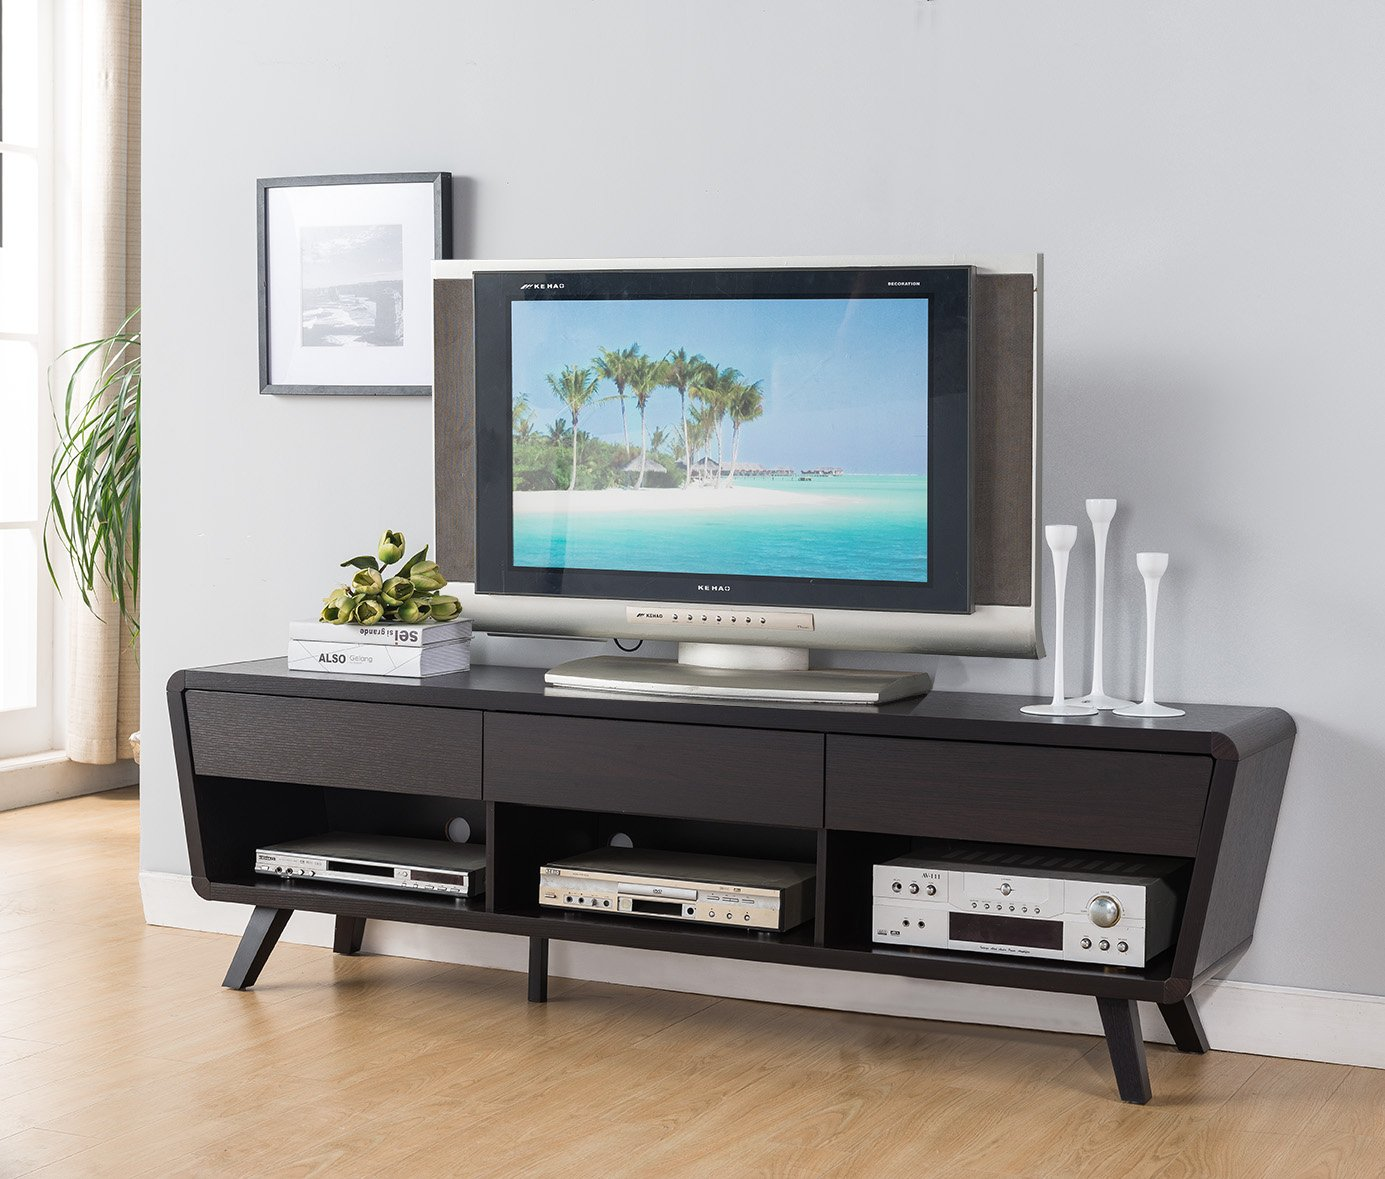 """Smart home 151364 Alexa Contemporary TV Stand Entertainment Center (Red Cocoa) - 74"""" TV Stand Home Entertainment Center Console Storage Compartments & Displays for your Blu Rays, DVDs and More! 3 Drawers & 3 Display Decks - tv-stands, living-room-furniture, living-room - 71Nnj%2BeLLqL -"""